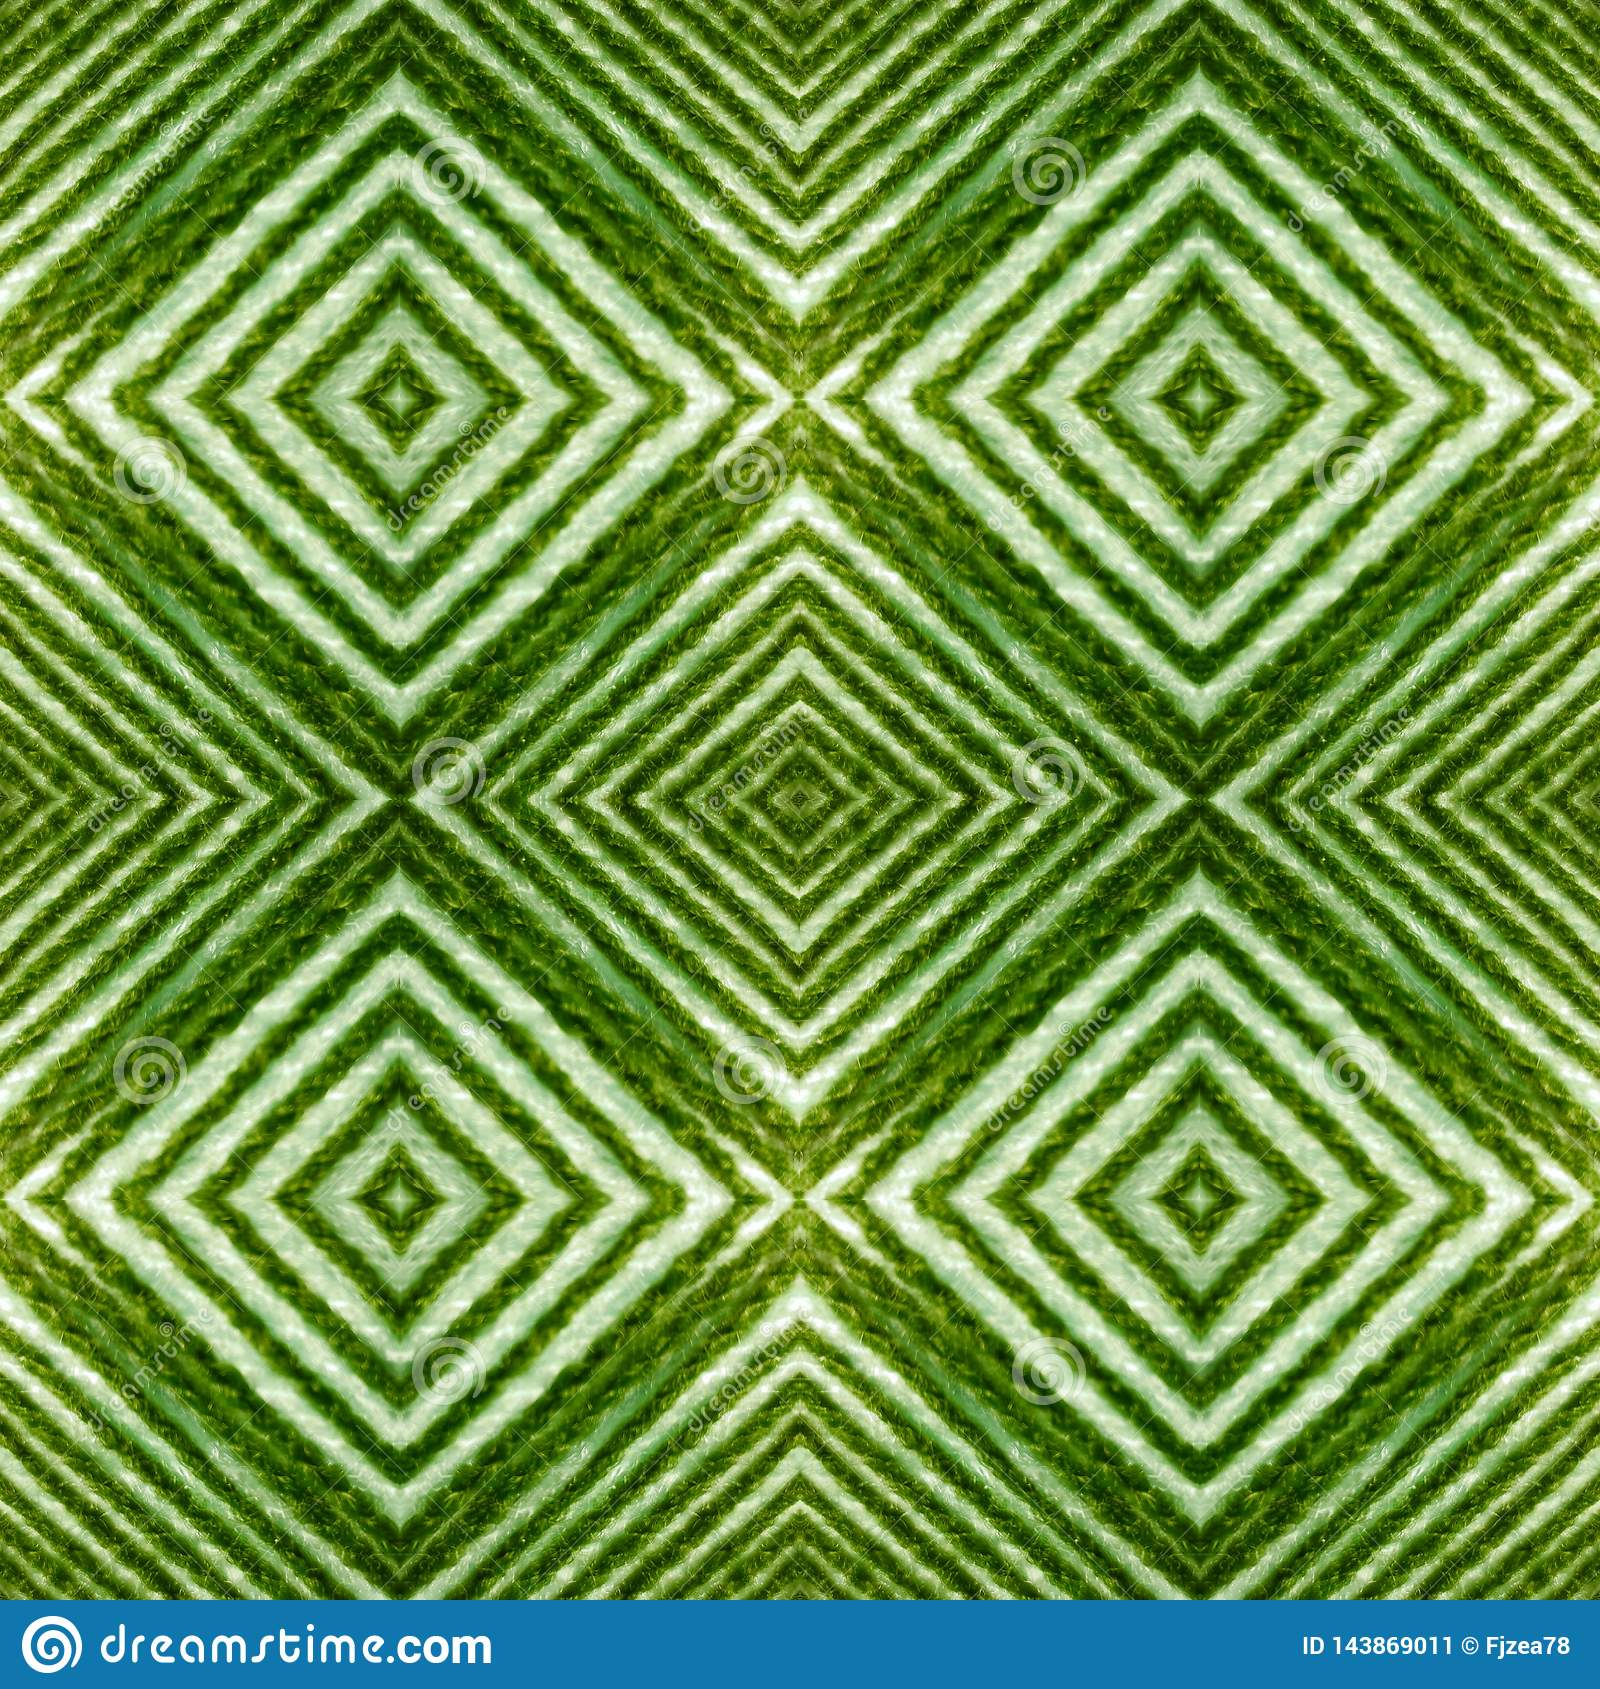 abstract design with lines and geometric patterns on a surface with green and white threads, background and texture